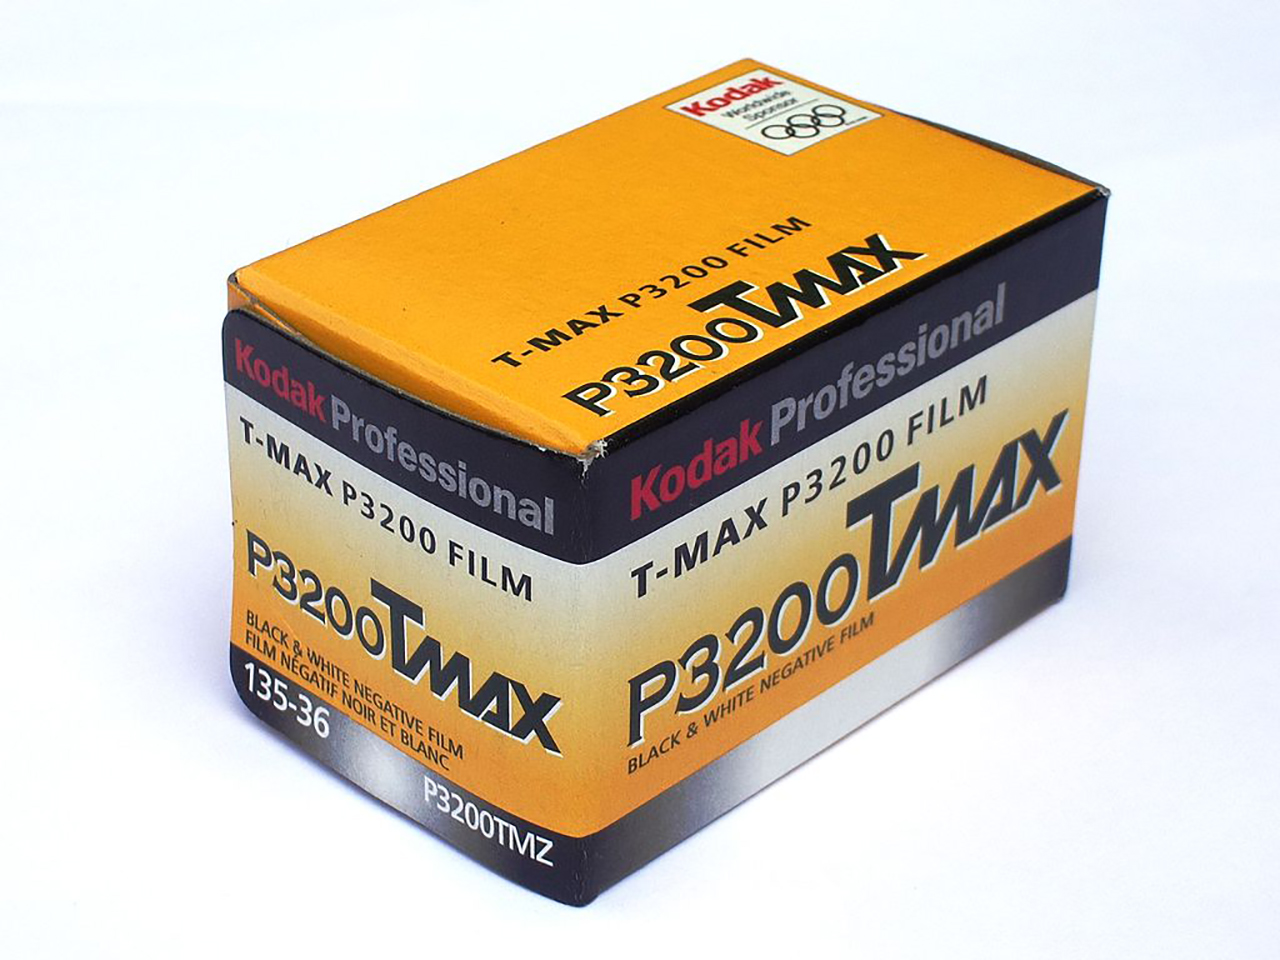 Film News: The triumphant return of Kodak T-Max 3200